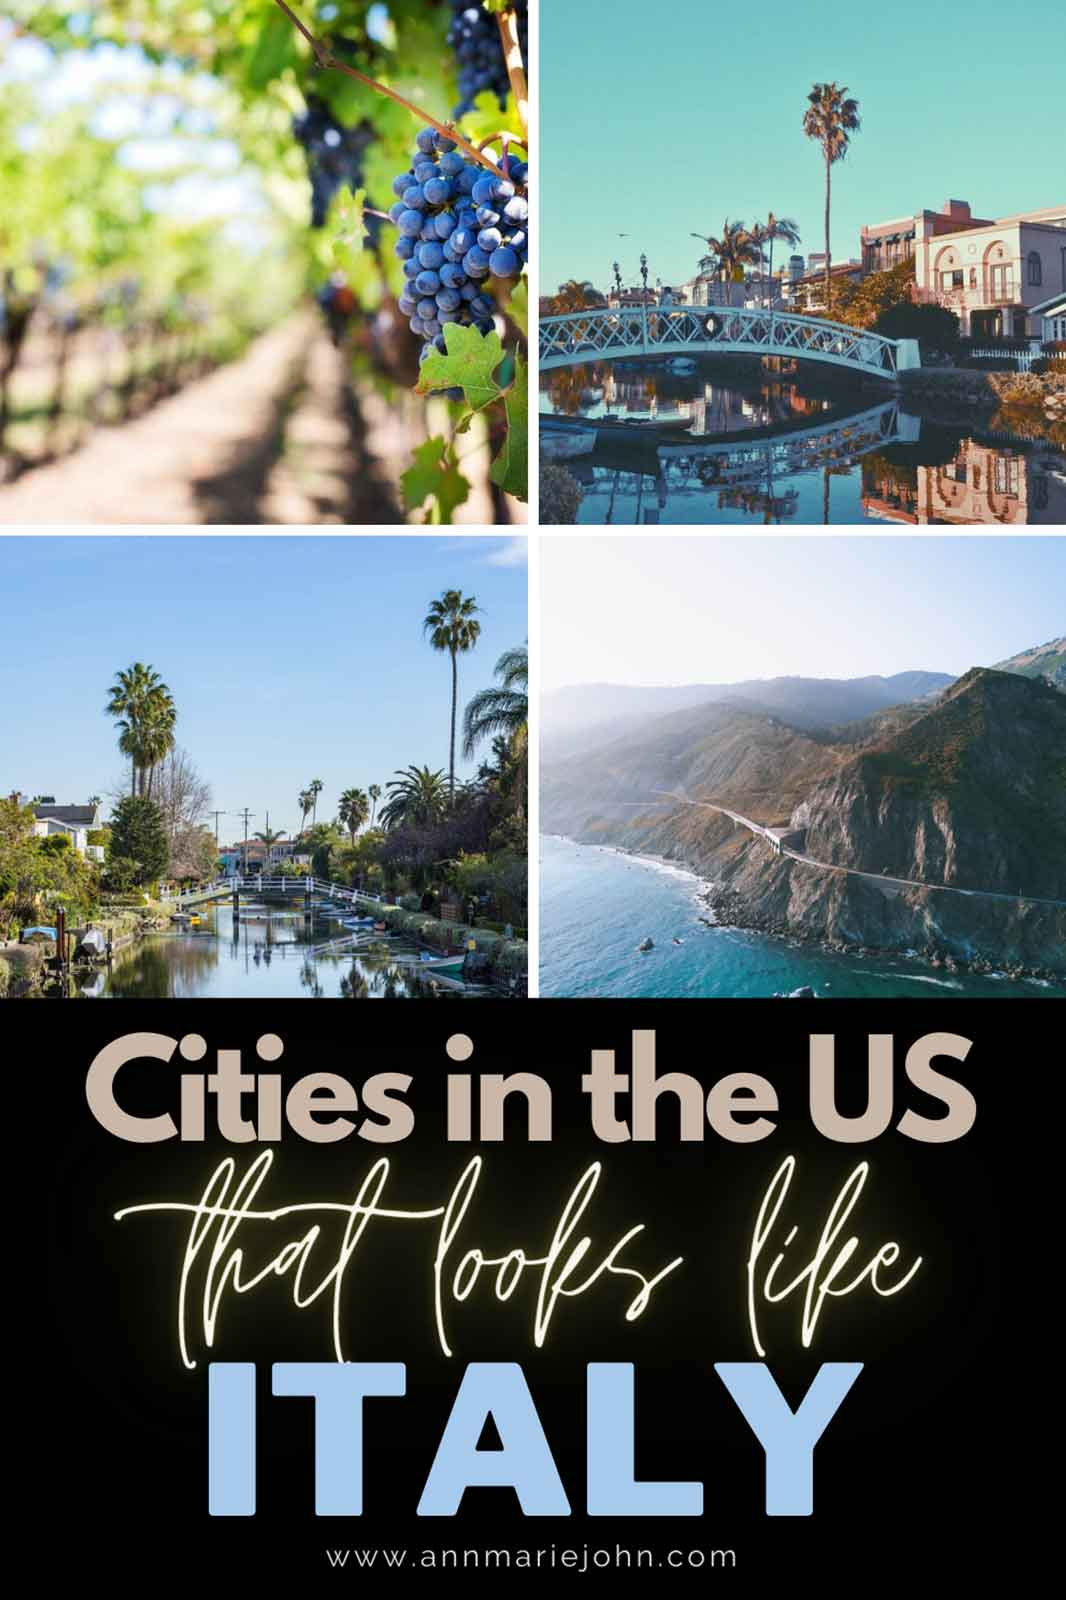 Incredible Cities in the US That Look Like Italy